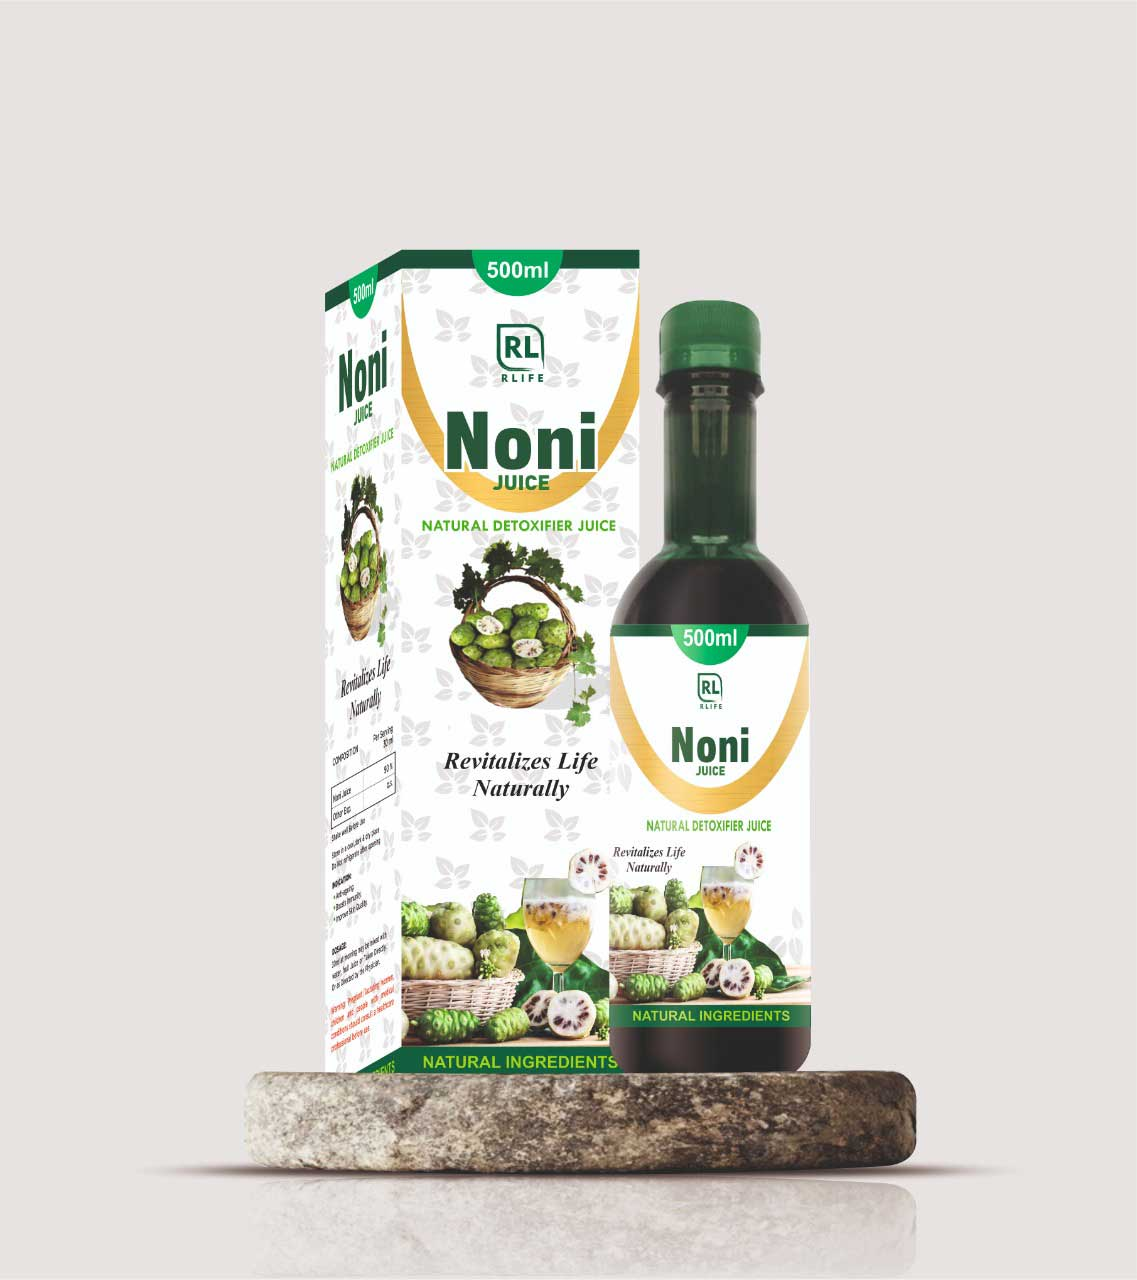 Noni Juice Manufacturer In India - Third-Party Manufacturer of Noni Juice